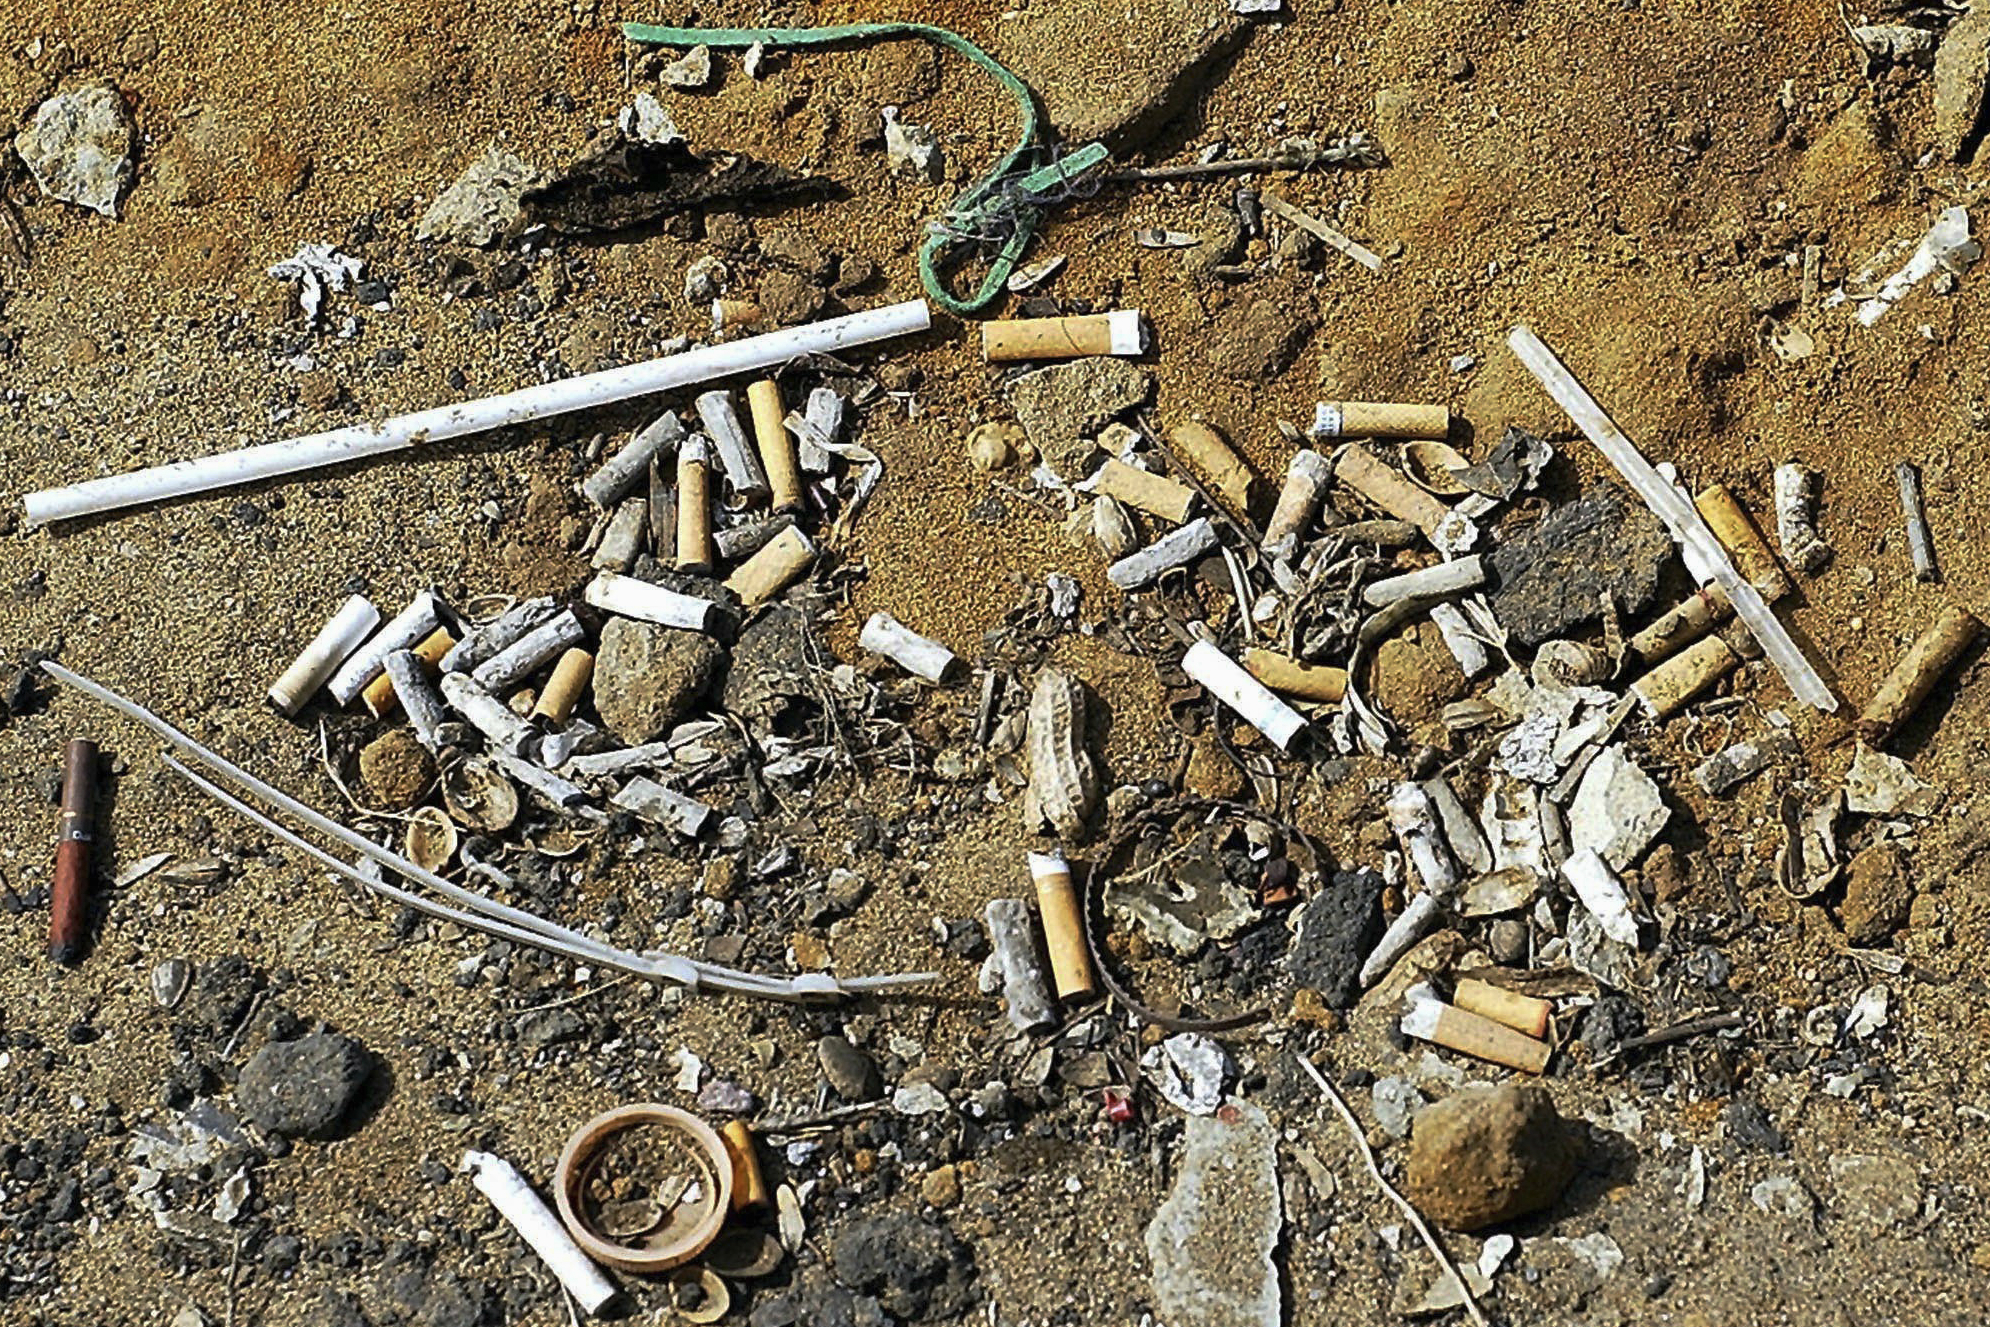 Cigarette butts and plastic polluting a beach